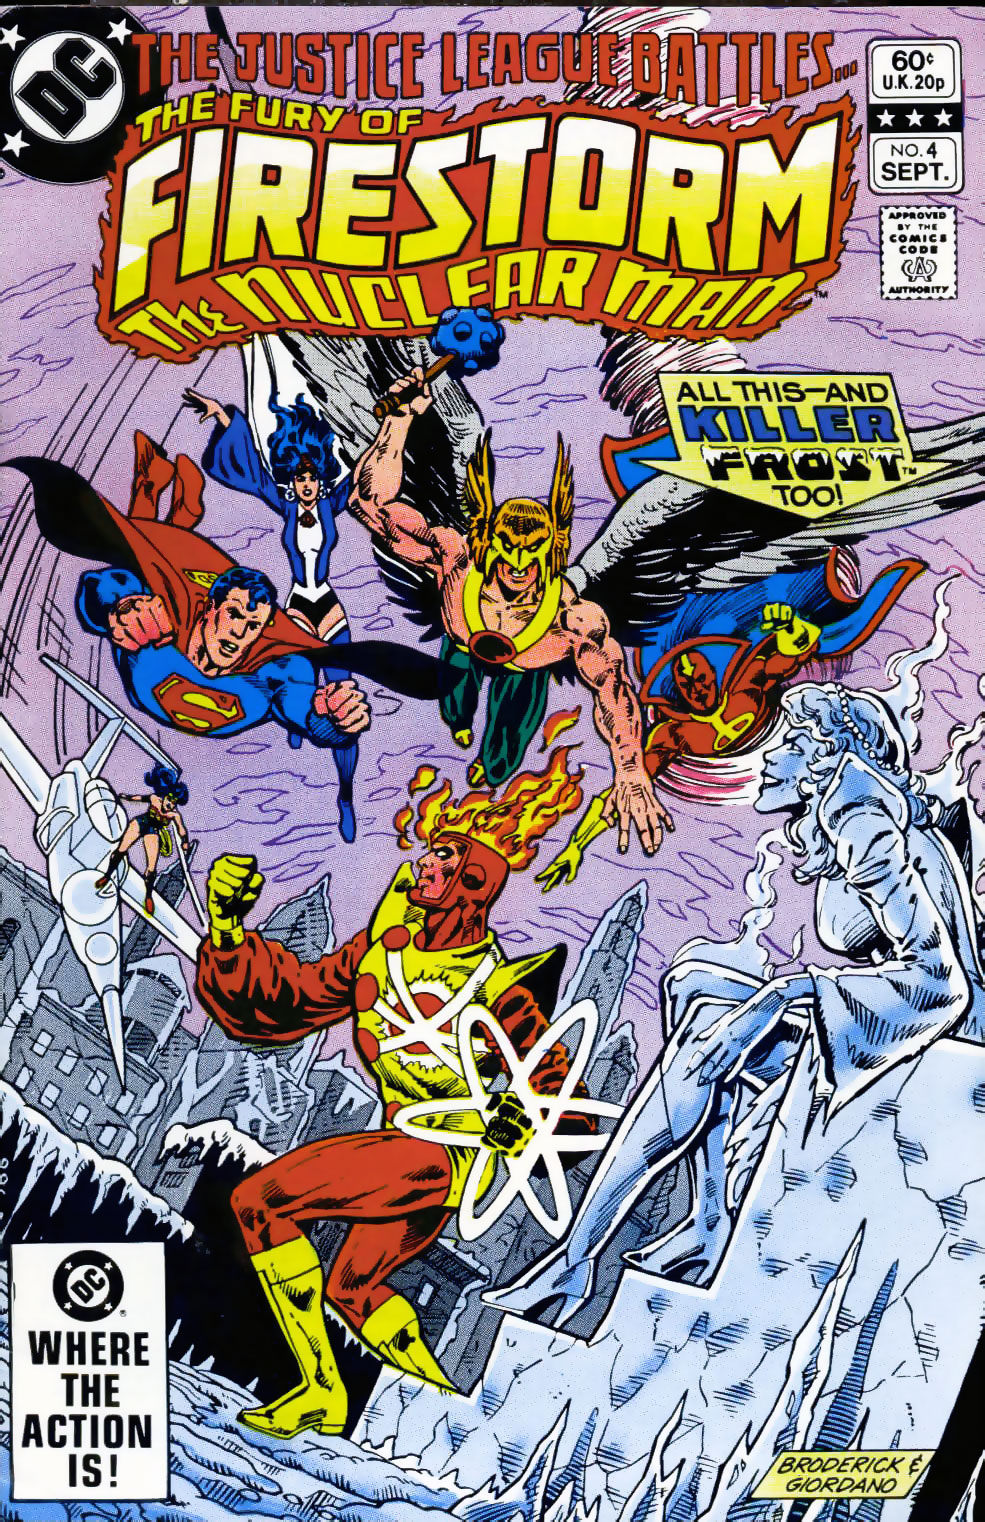 Fury of Firestorm #4 cover by Pat Broderick and Dick Giordano